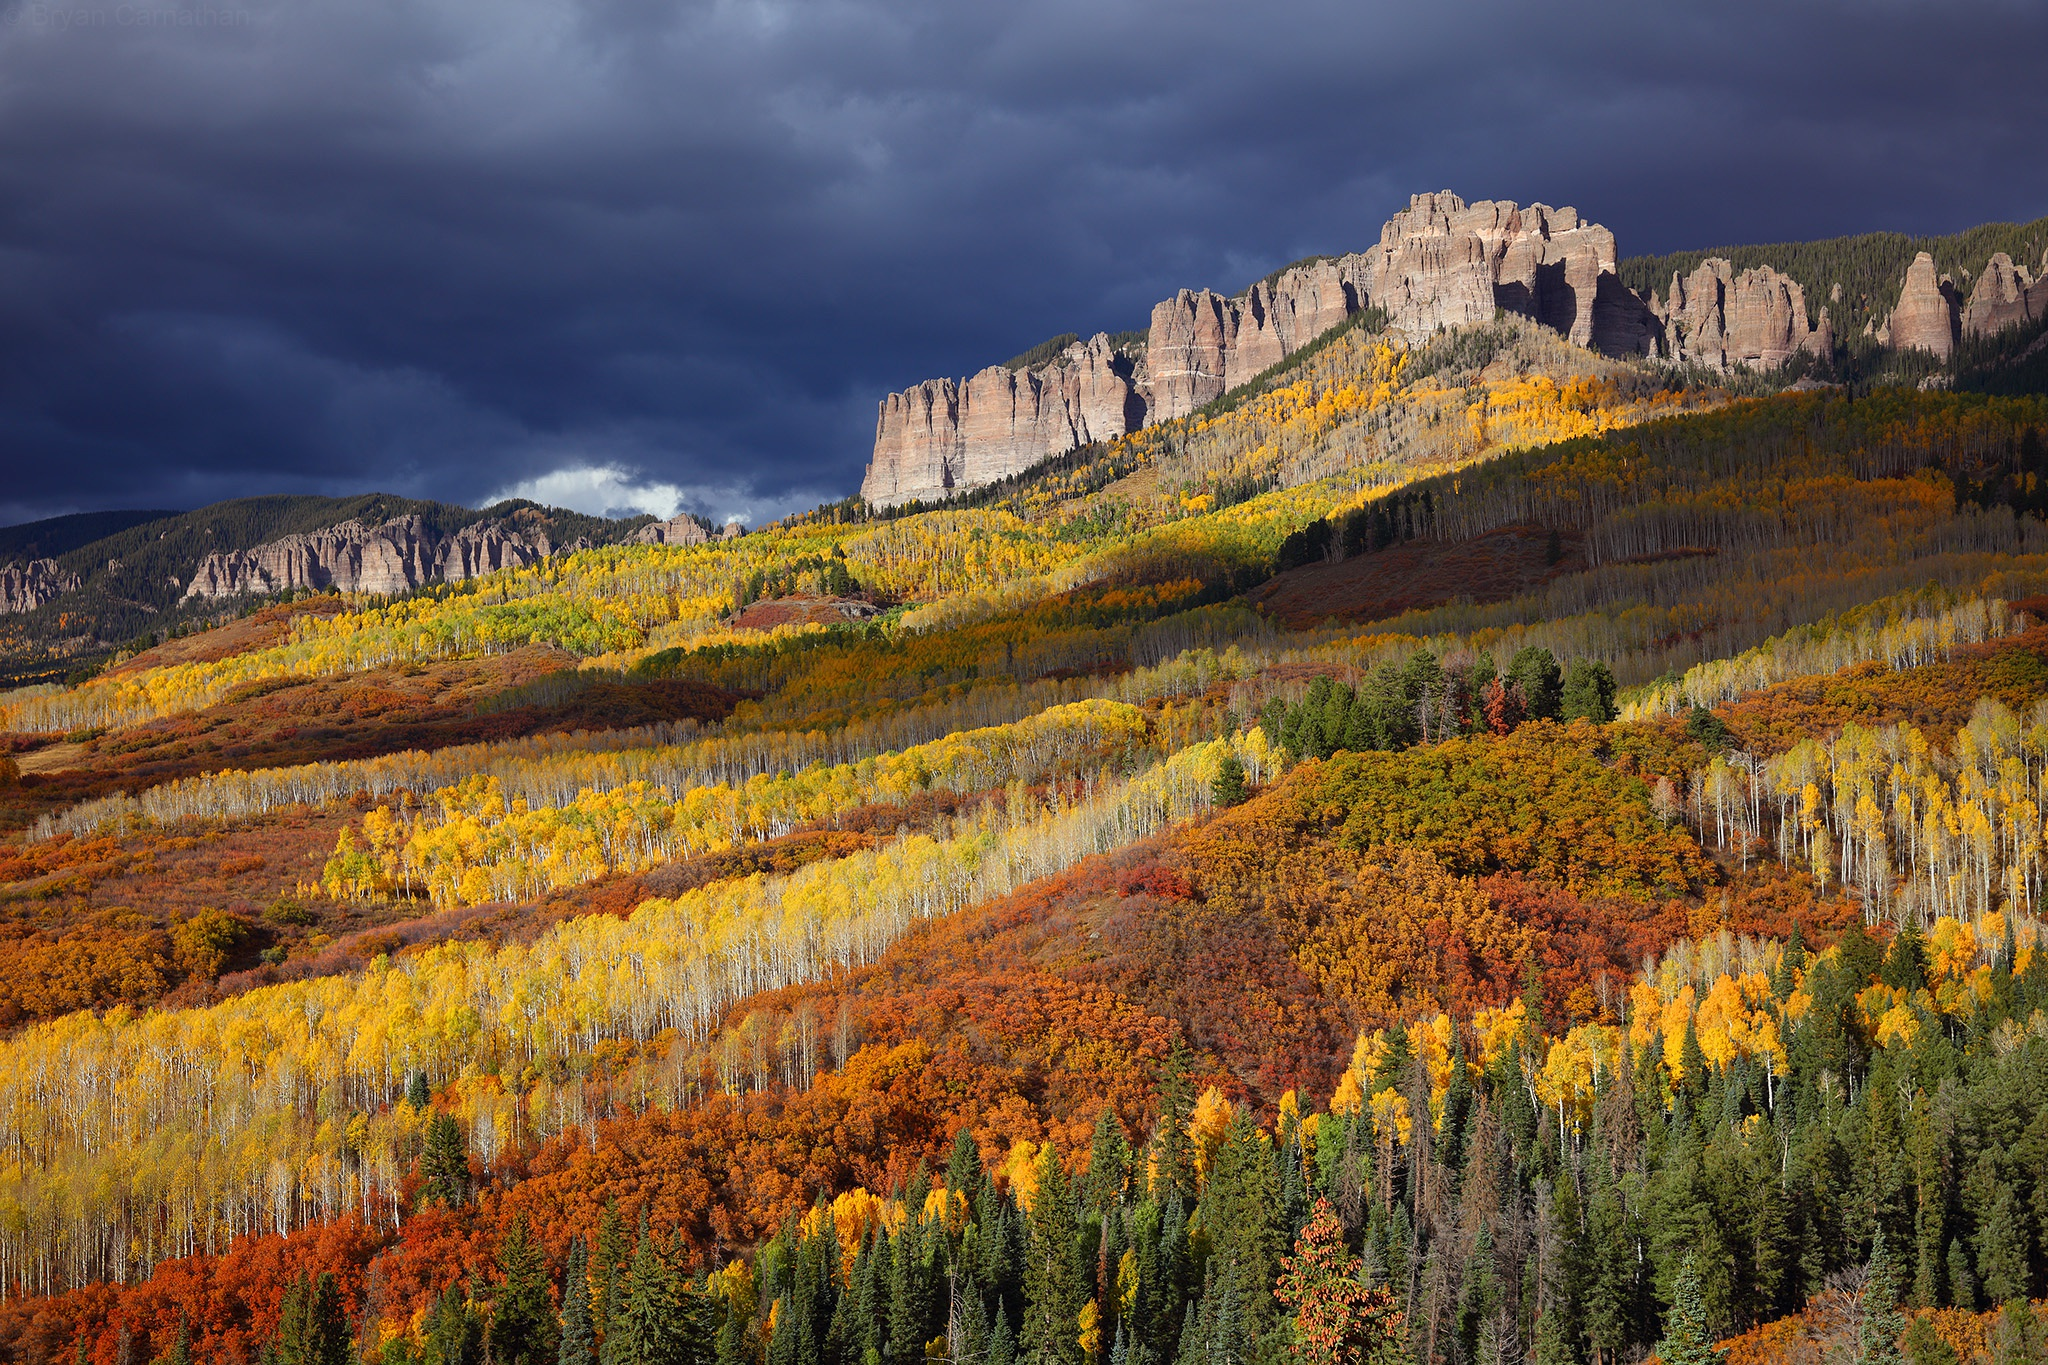 Forest Mountain Usa Landscape Cliff 2048x1365